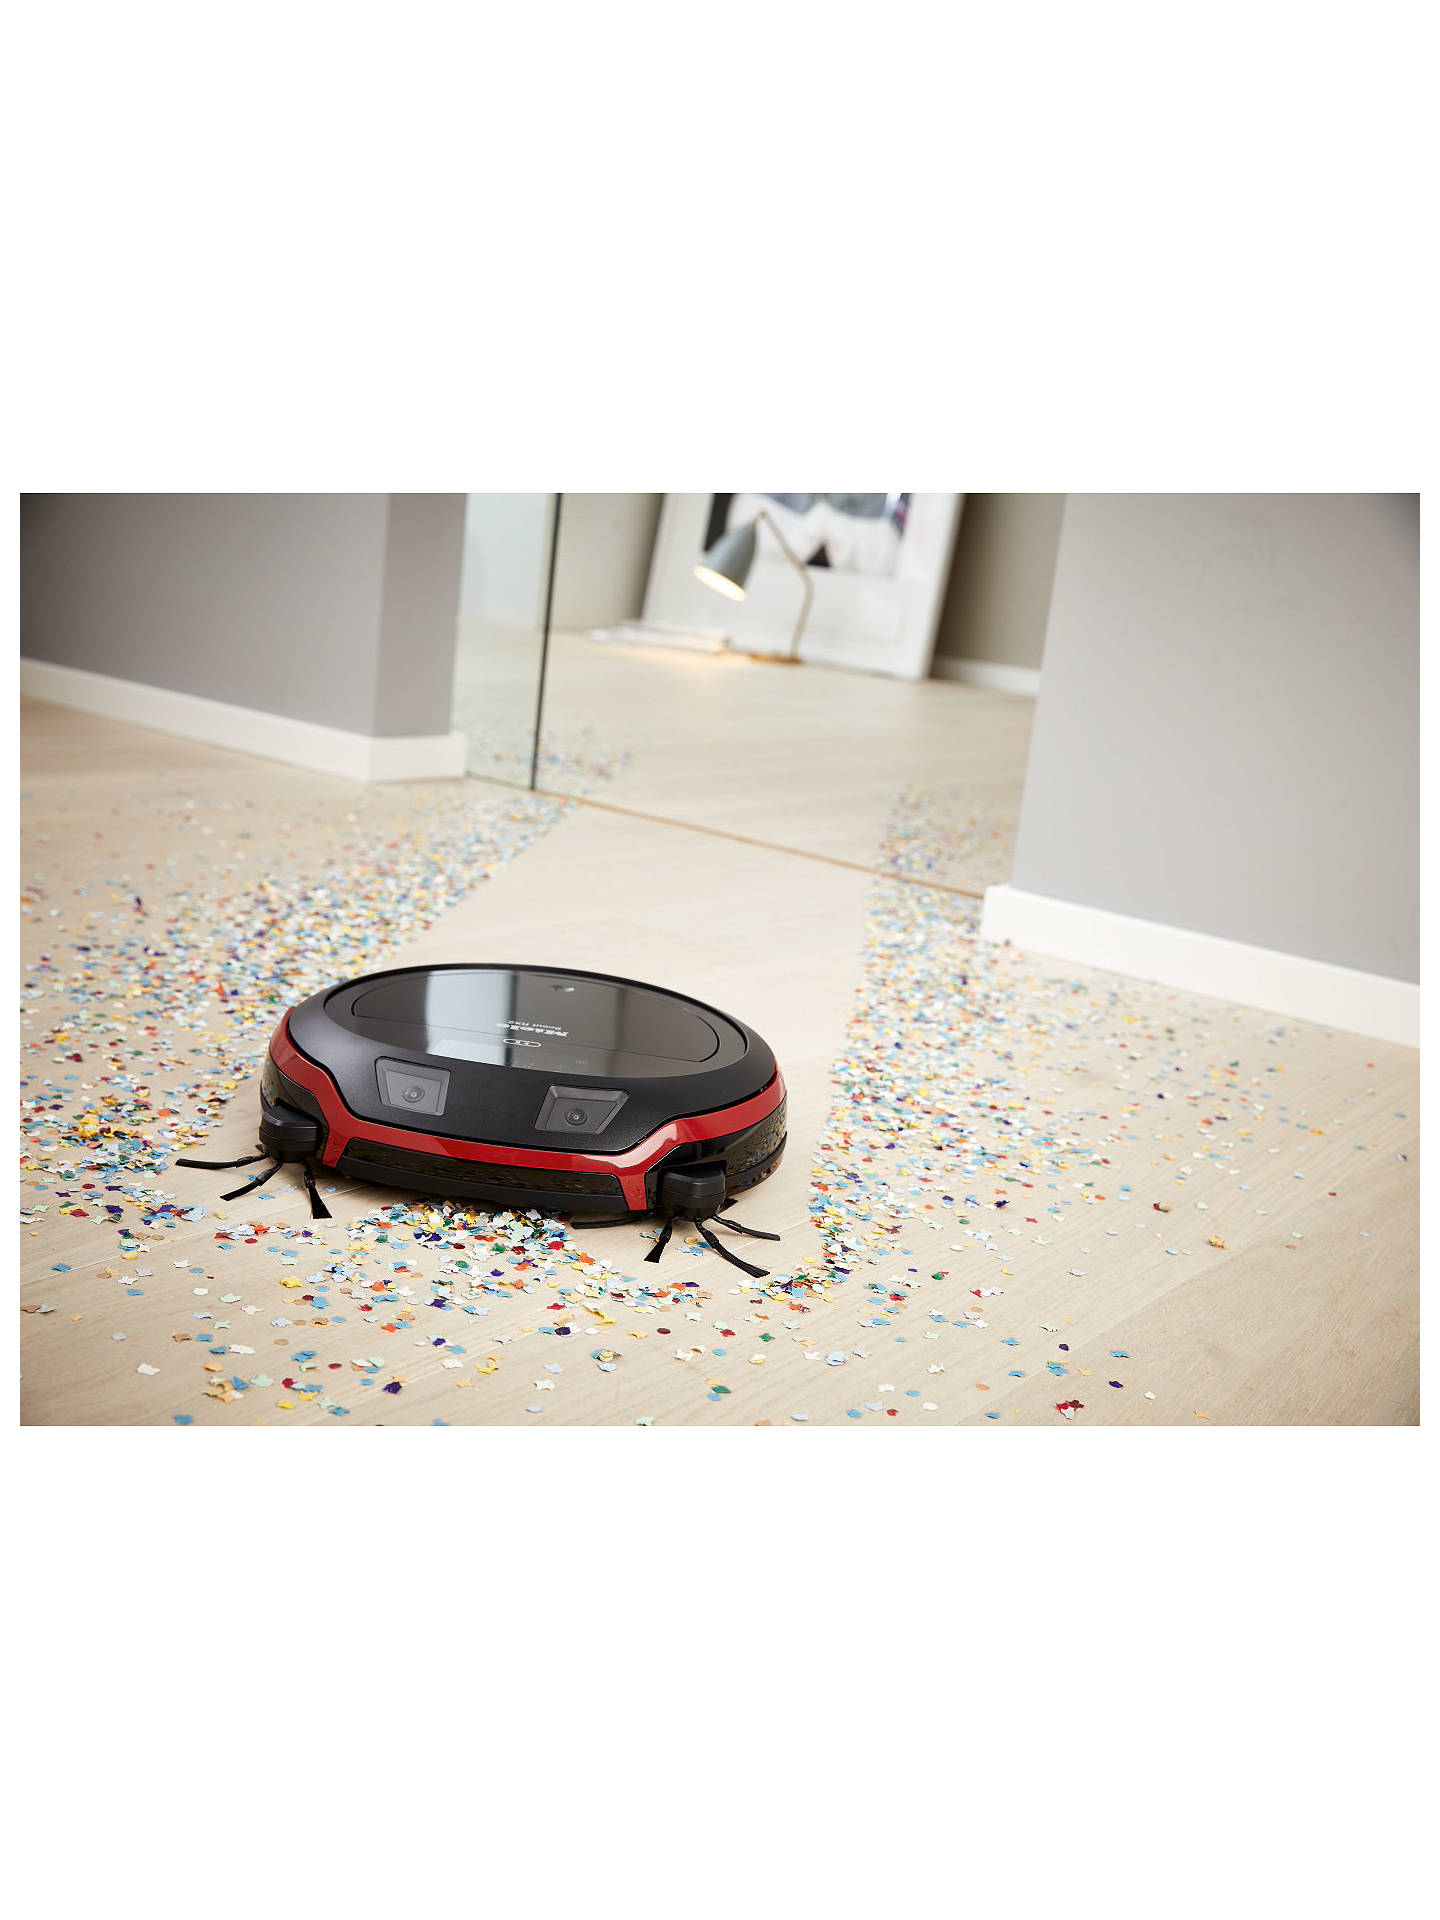 Buy Miele Scout RX2 SLQL0 00 Robot Vacuum Cleaner, Black Online at johnlewis.com